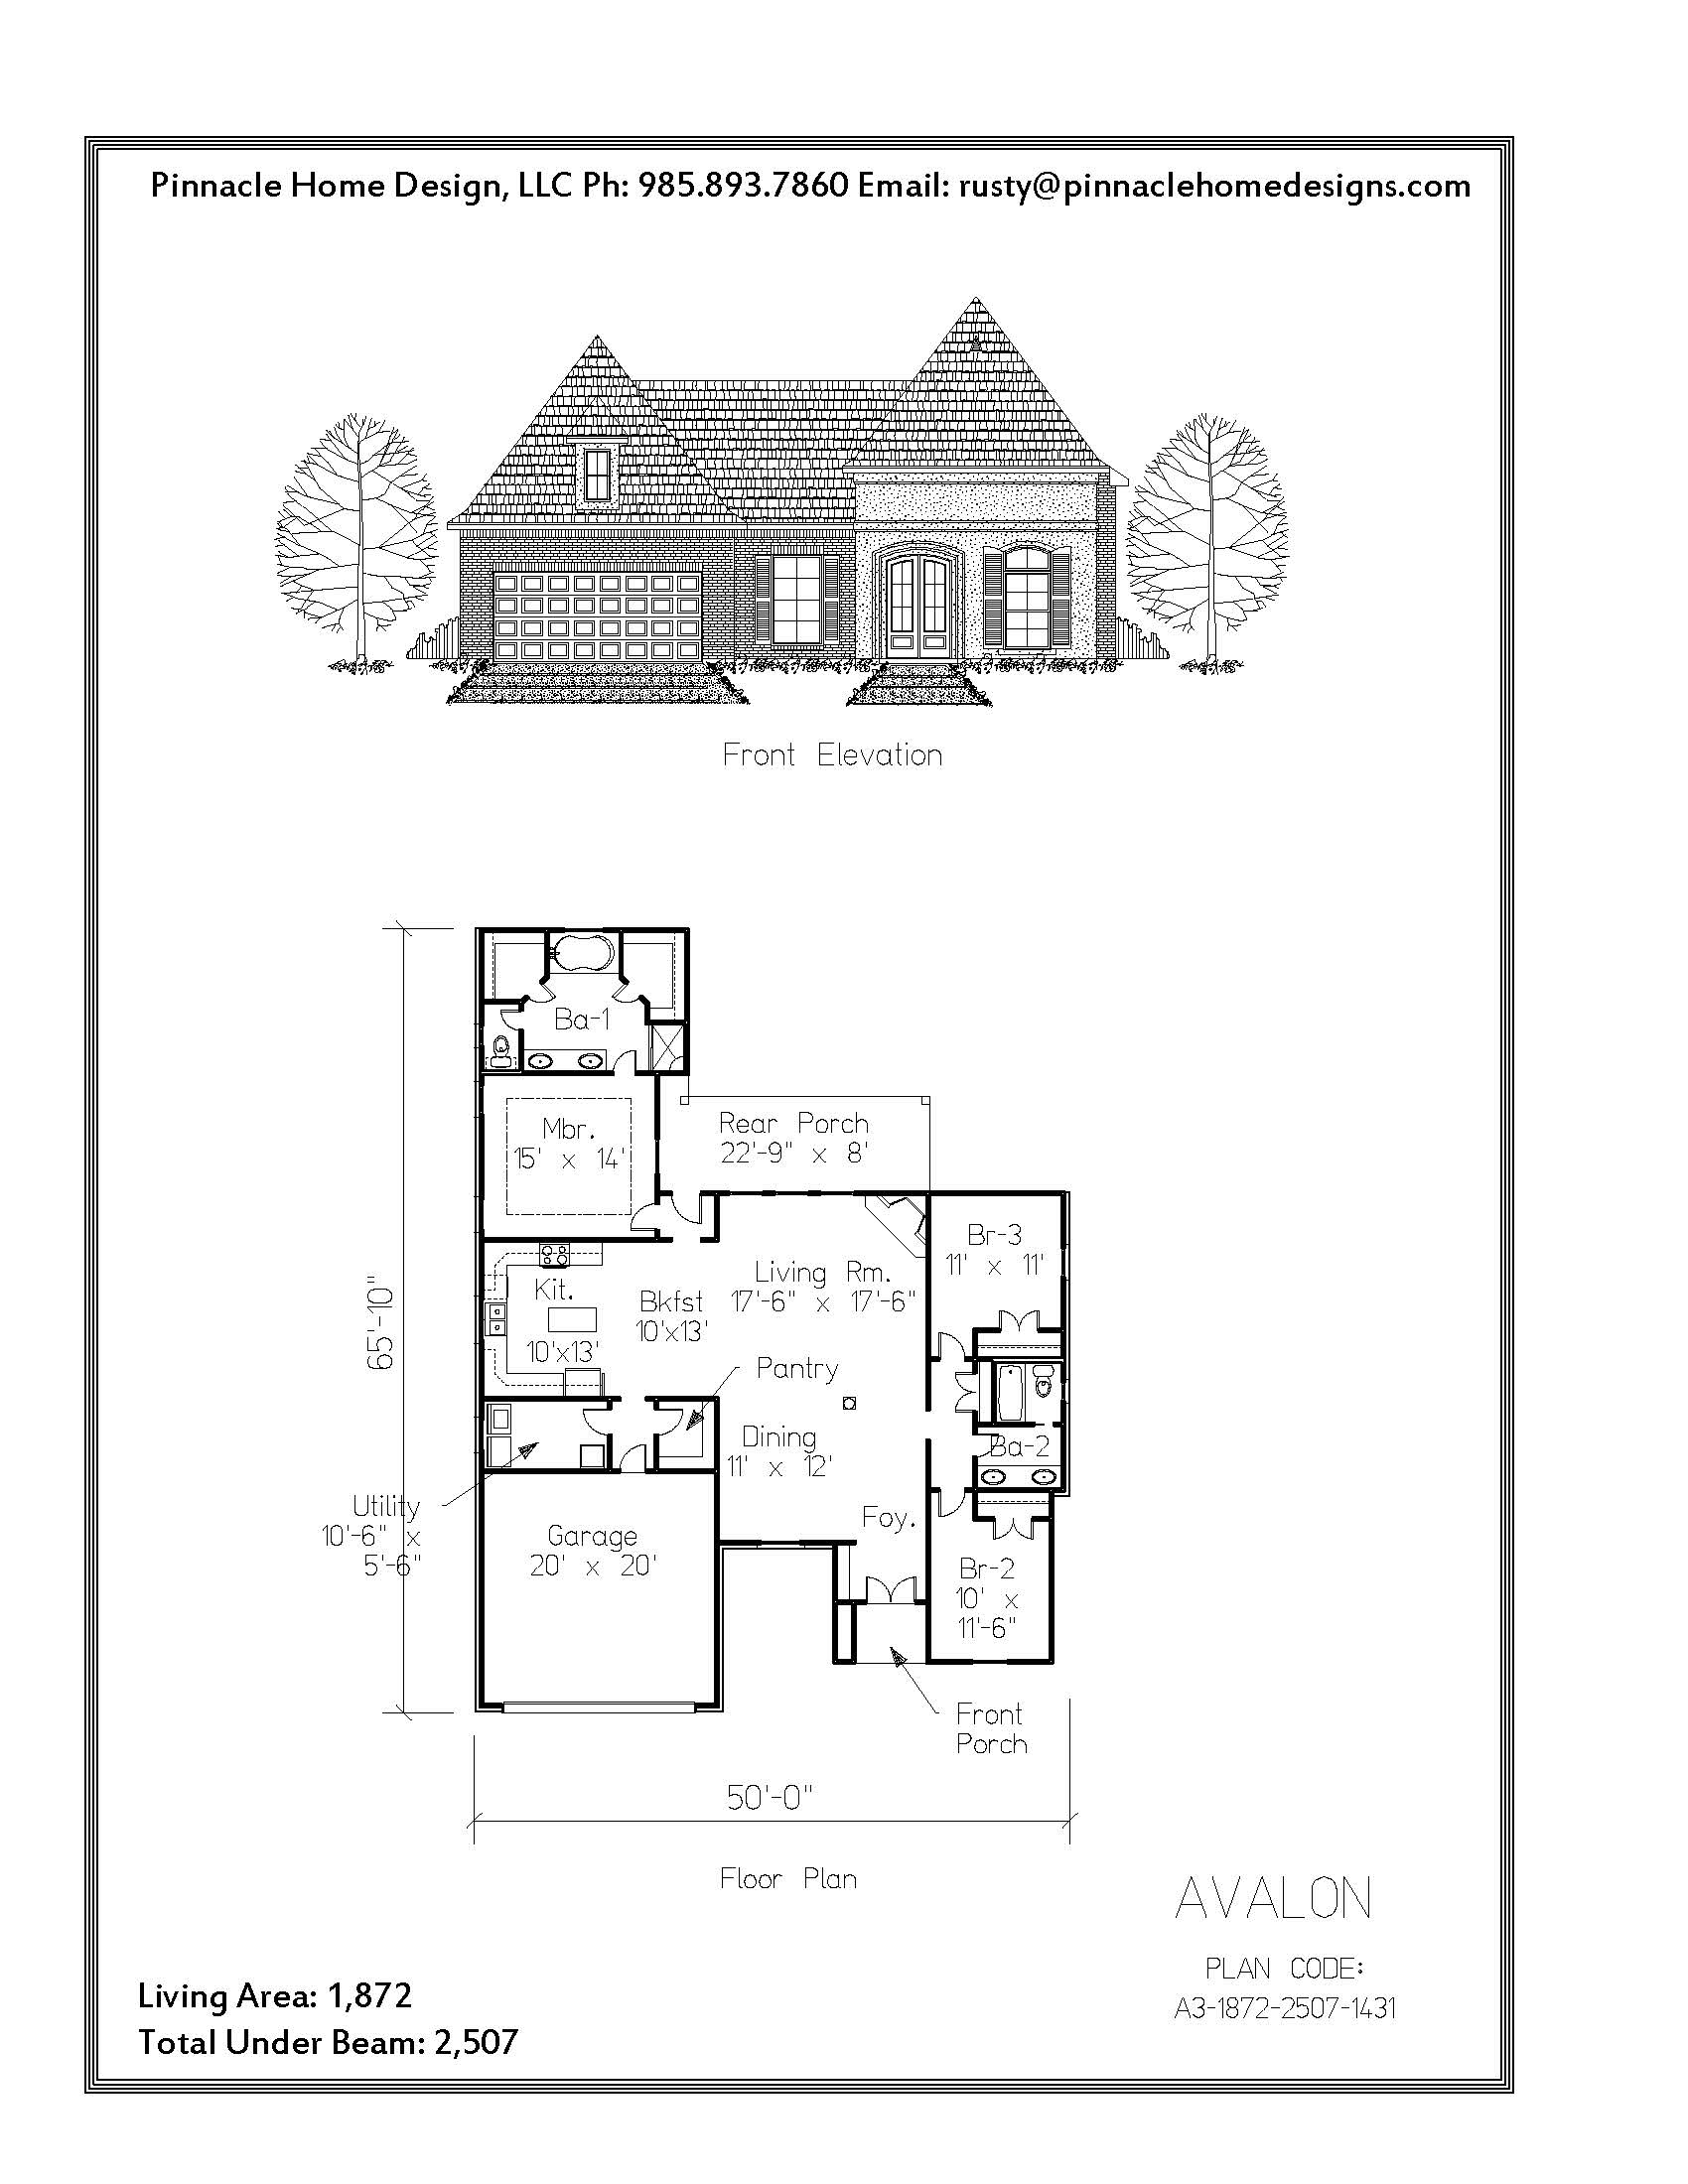 Pinnacle Home Designs The Avalon Floor Plan Pinnacle